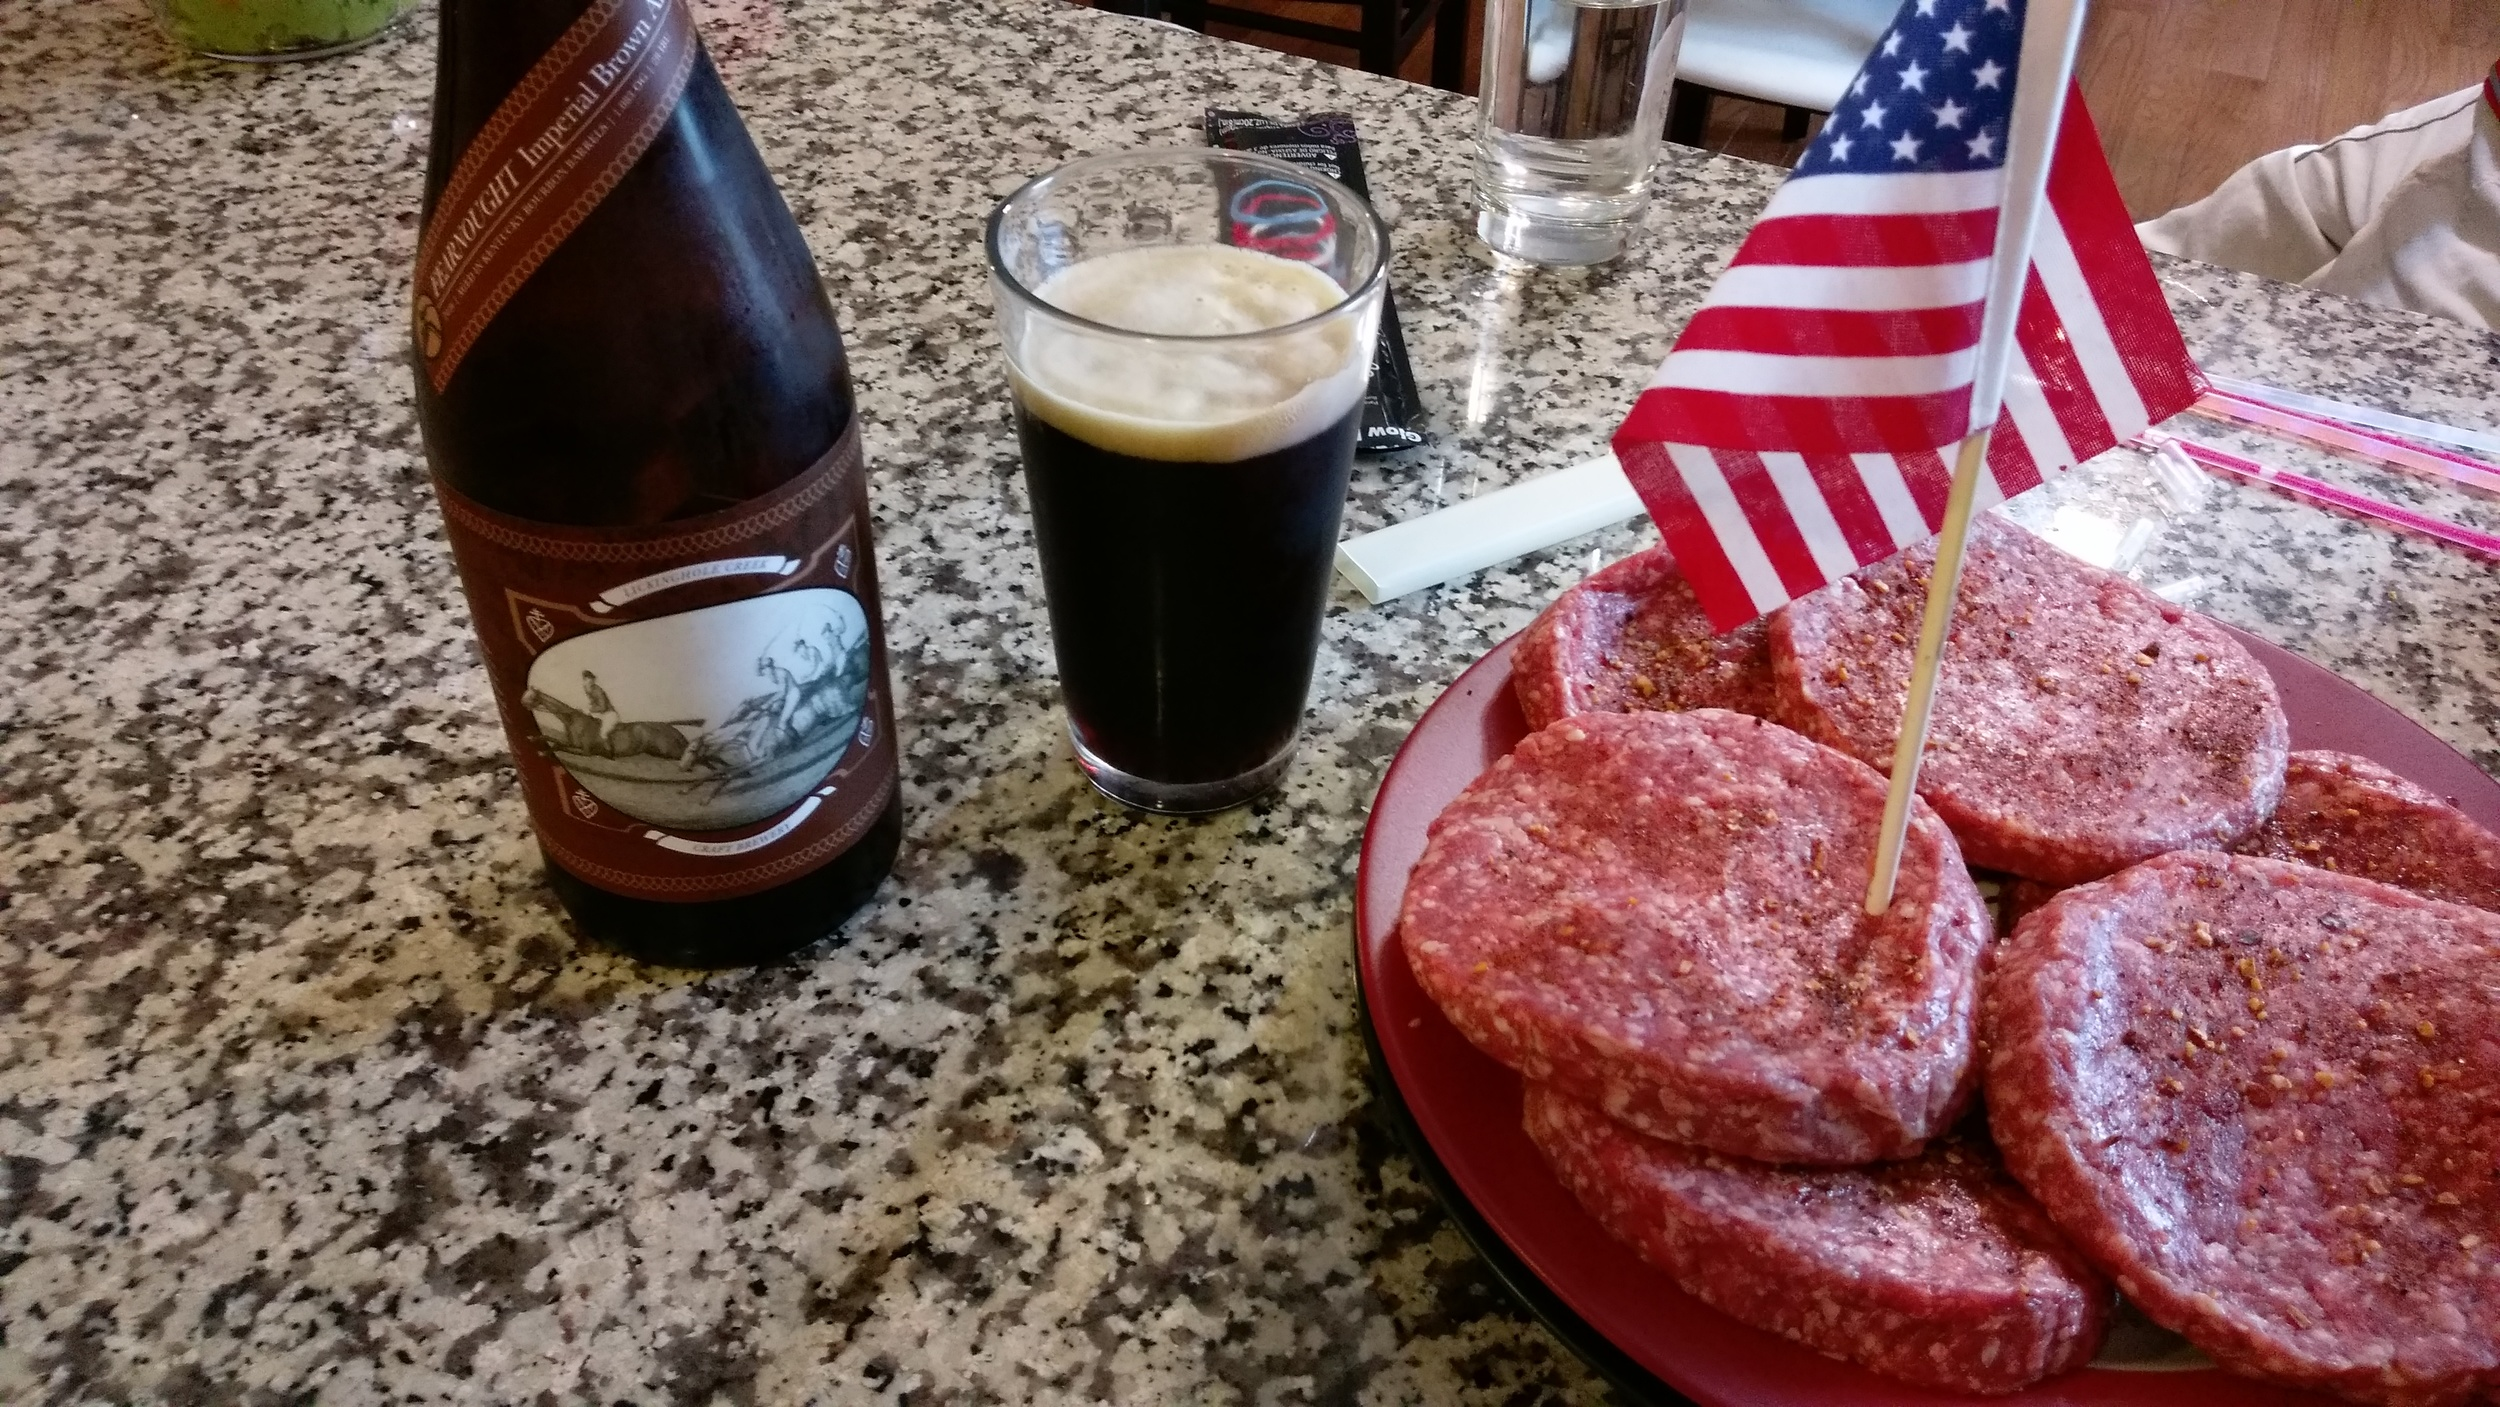 American burgers and beer